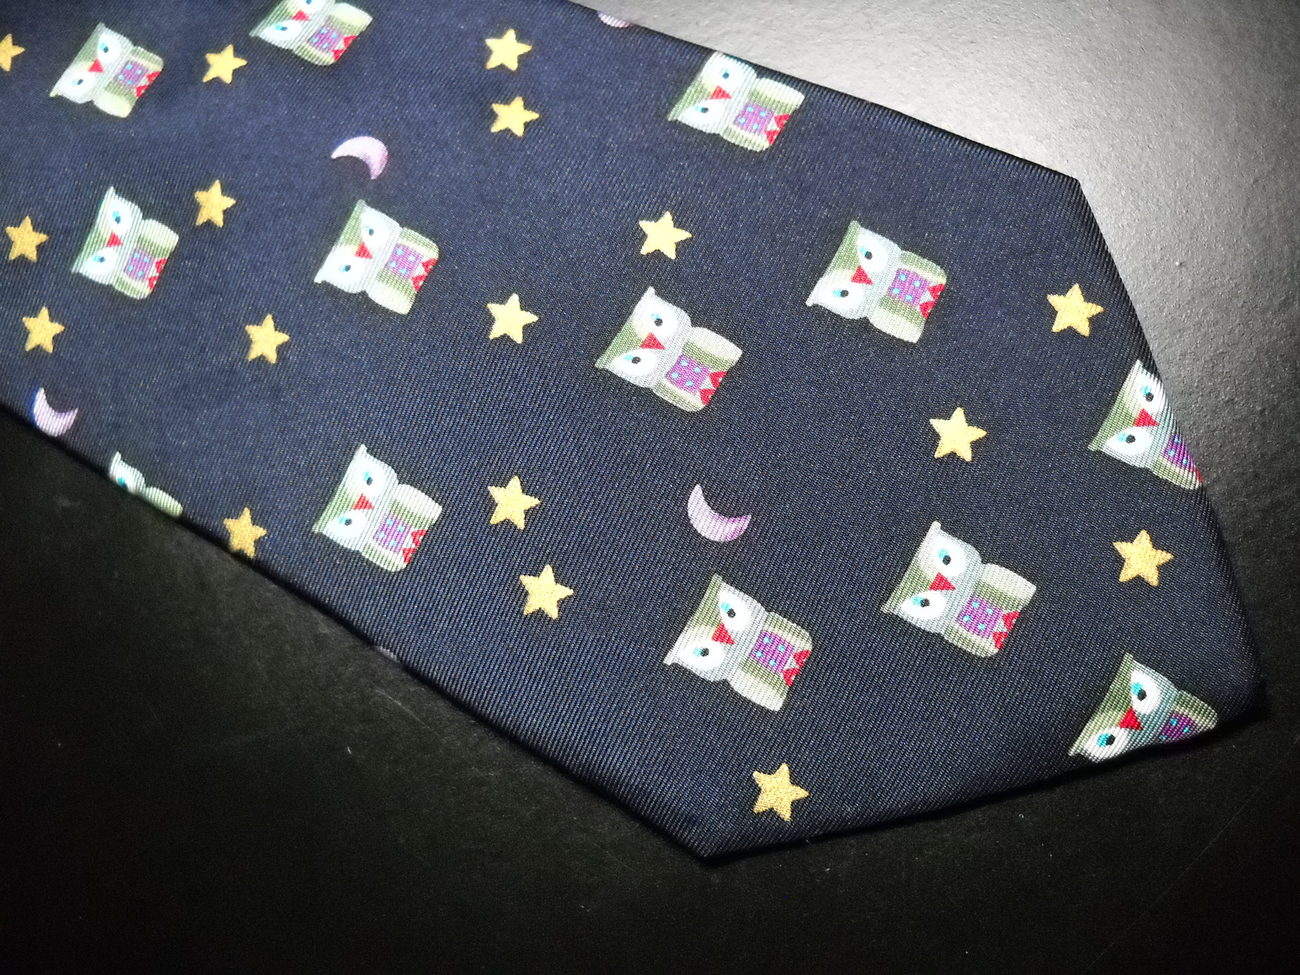 Alynn Neckwear Neck Tie Dark Blue with Repeating Night Owls in Greens Reds Blues